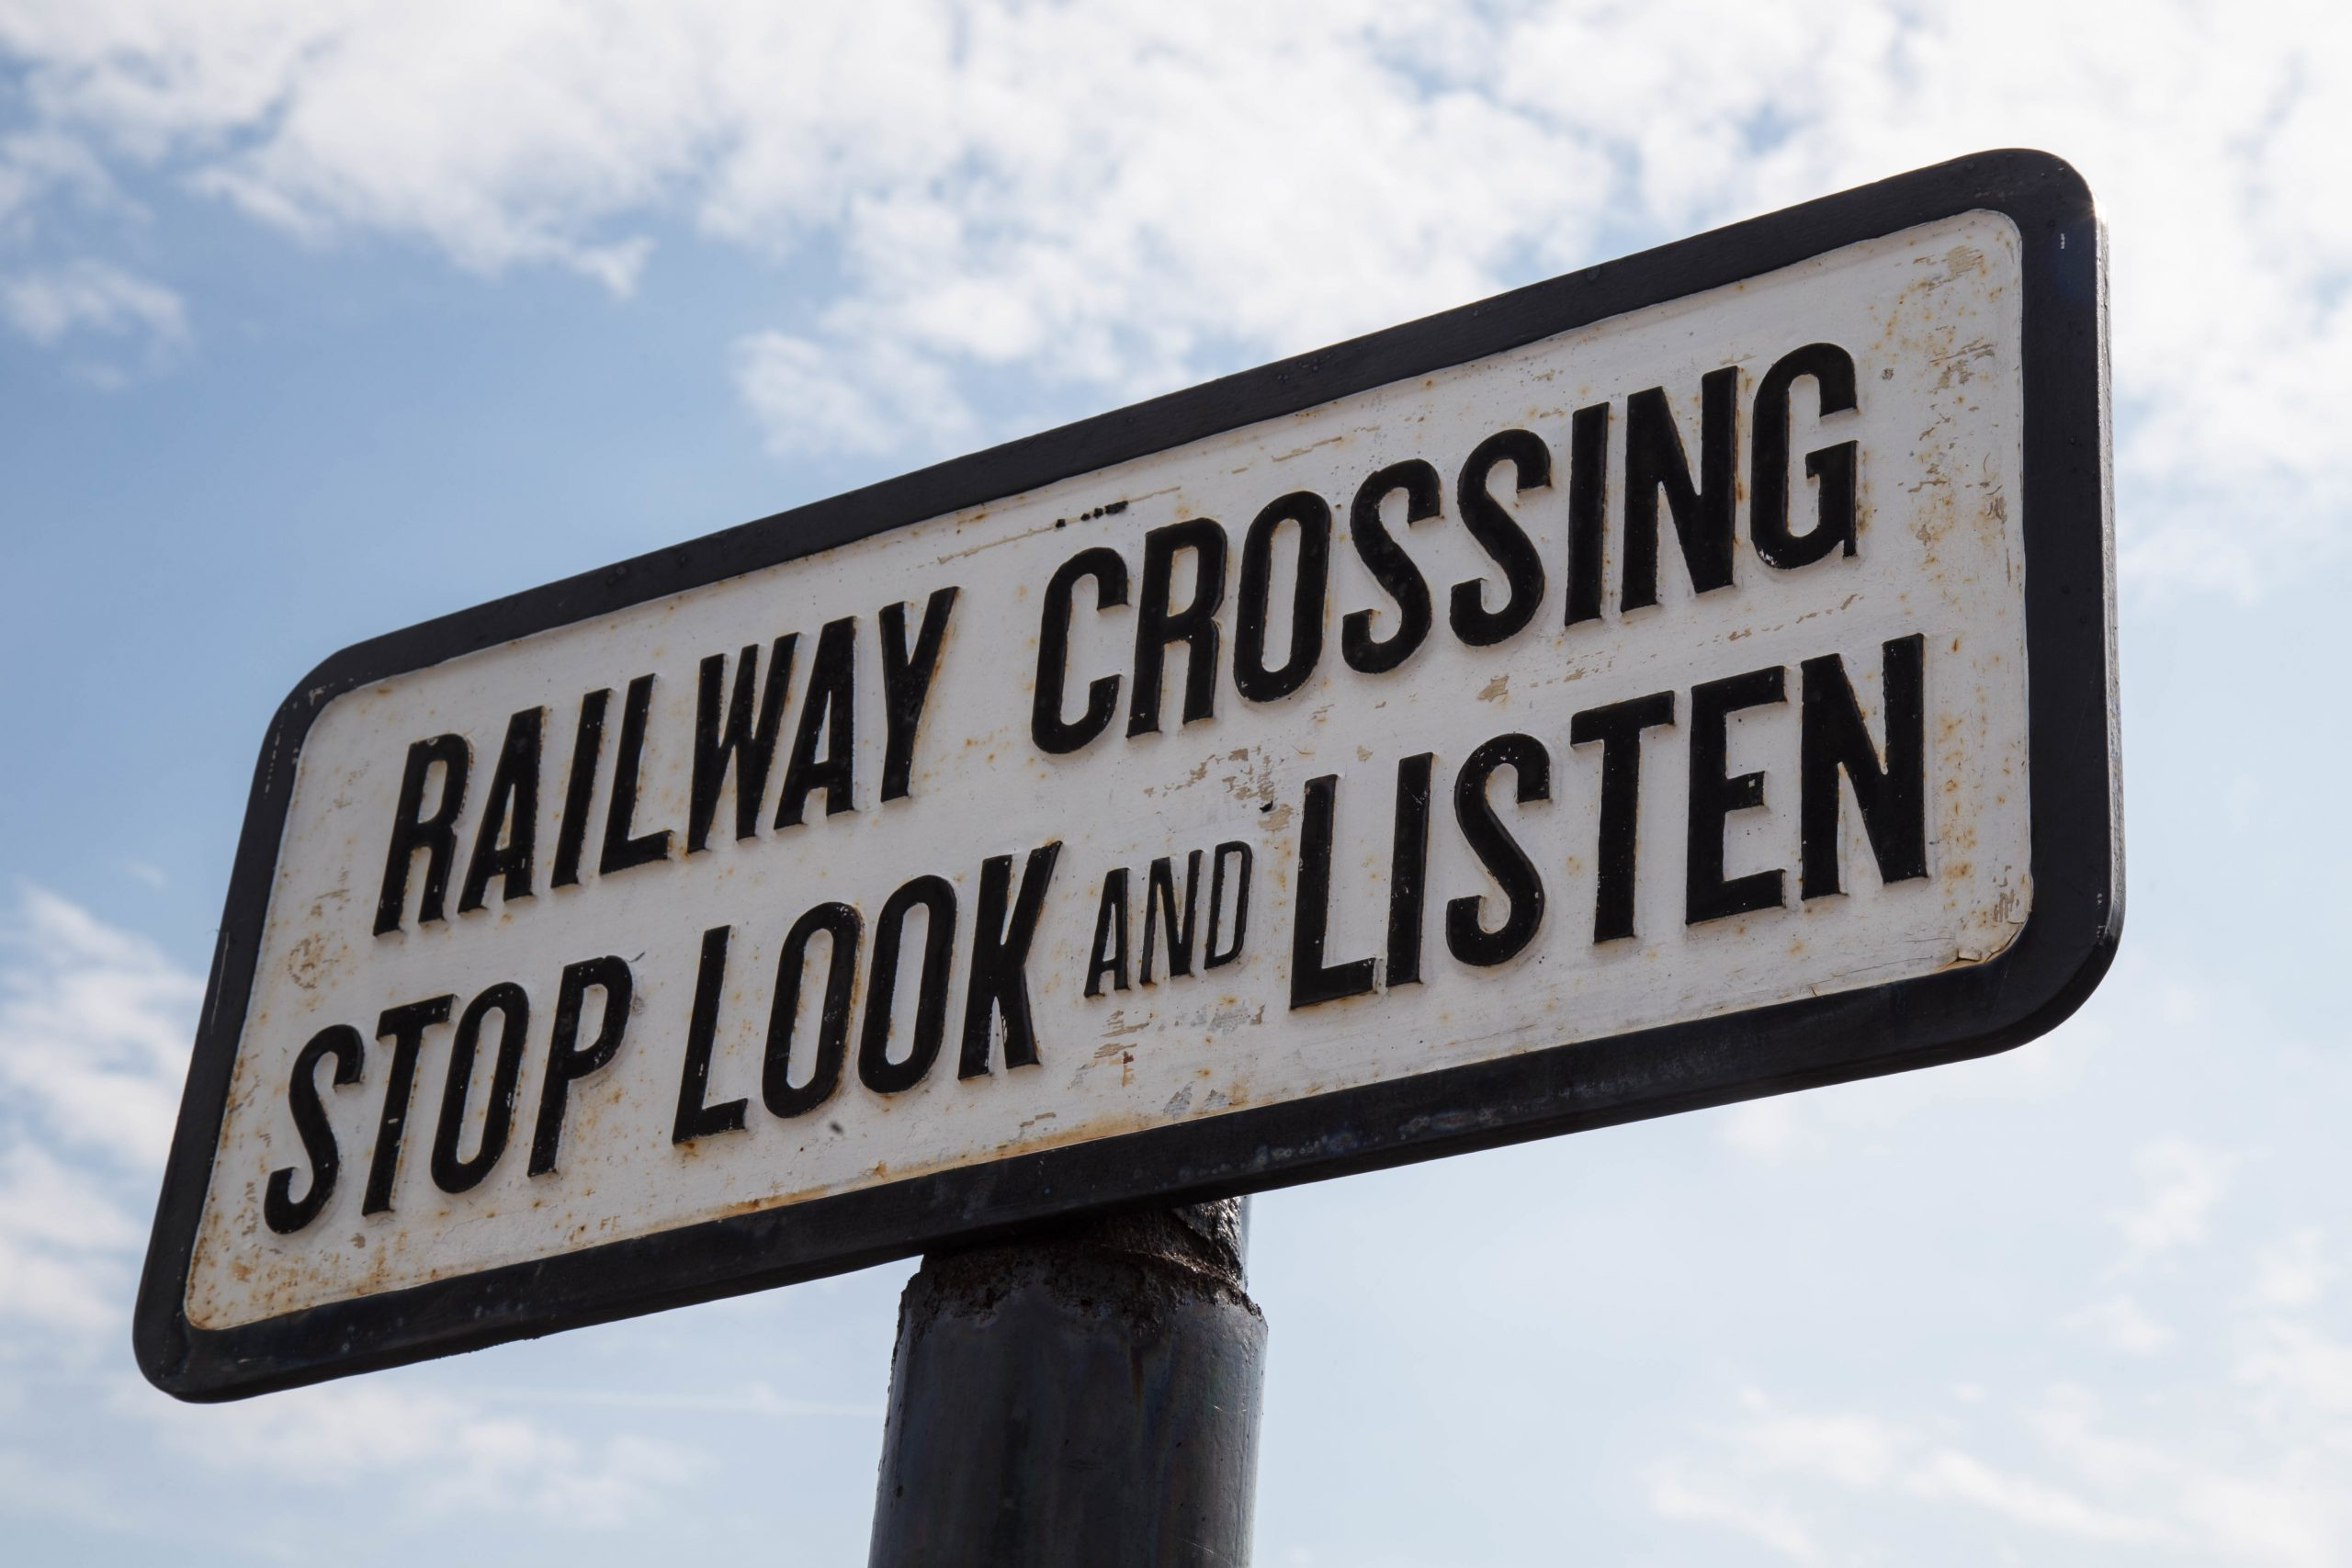 Stop look and Listen before crossing.